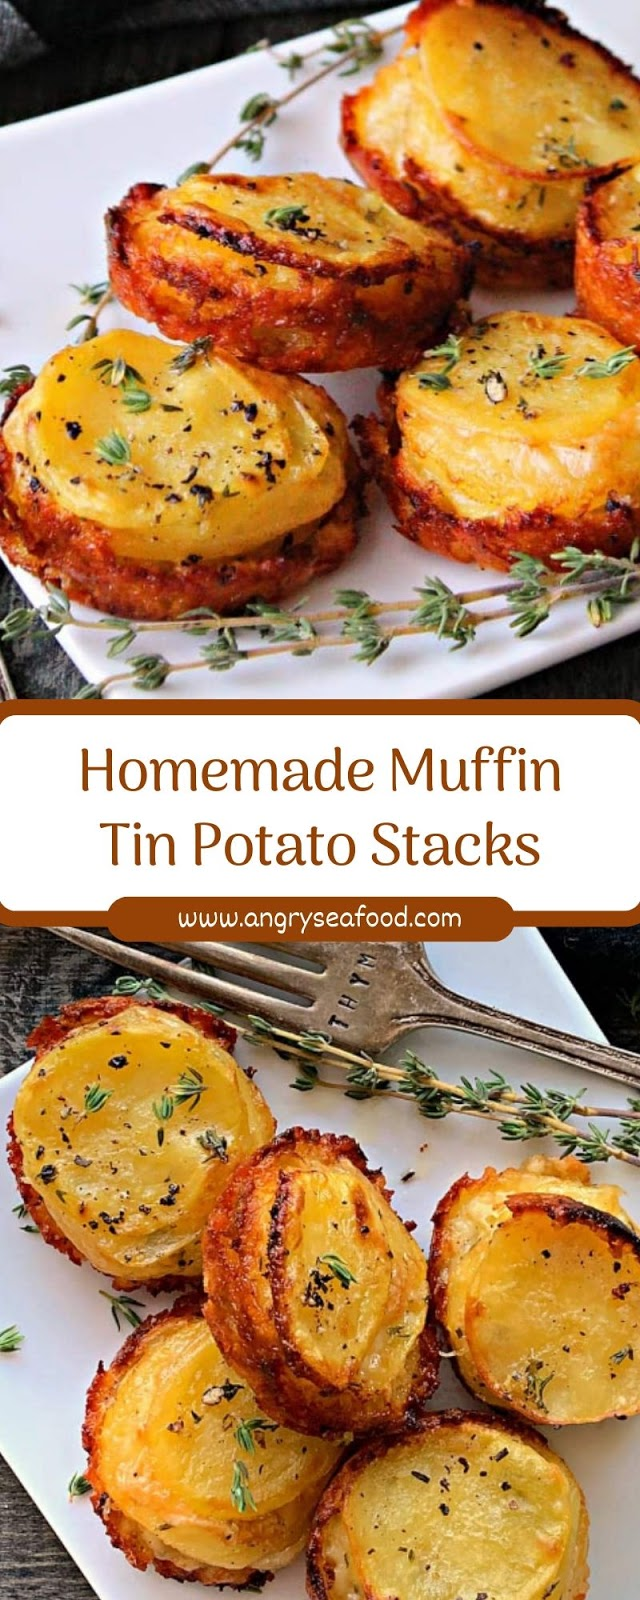 Homemade Muffin Tin Potato Stacks